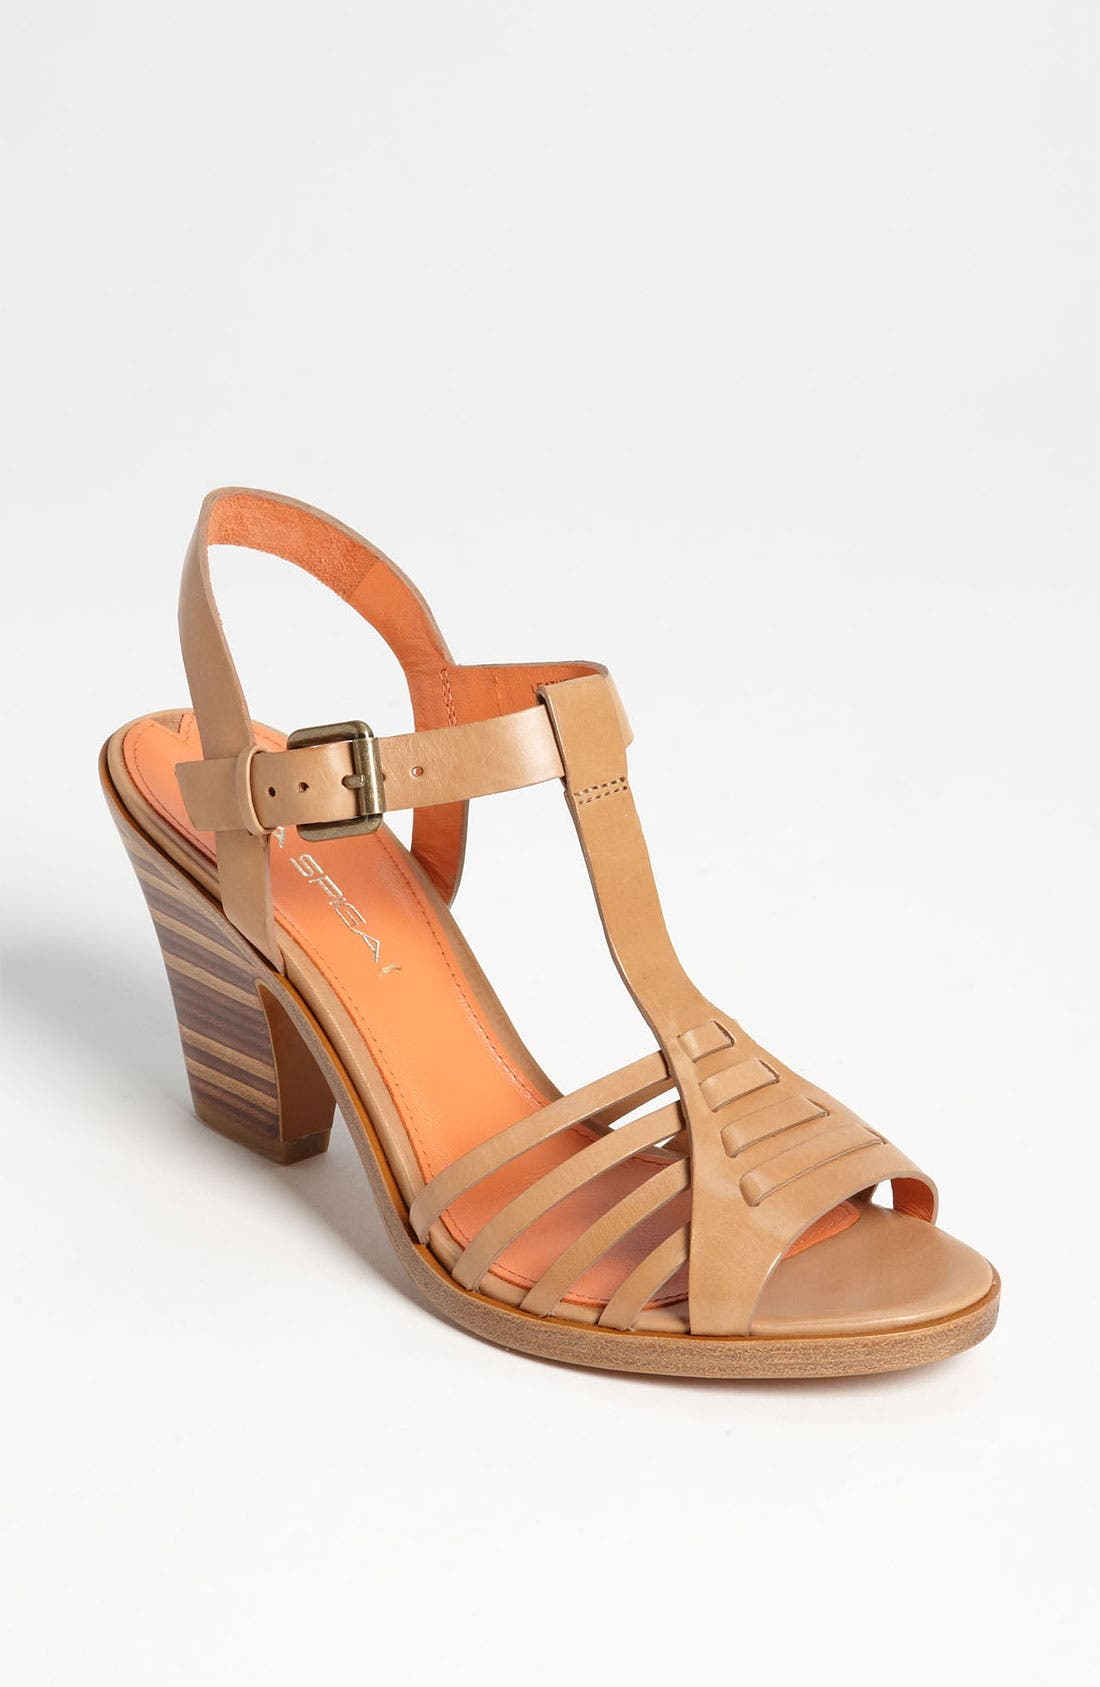 Alternate Image 1 Selected - Via Spiga 'Joelle' Sandal